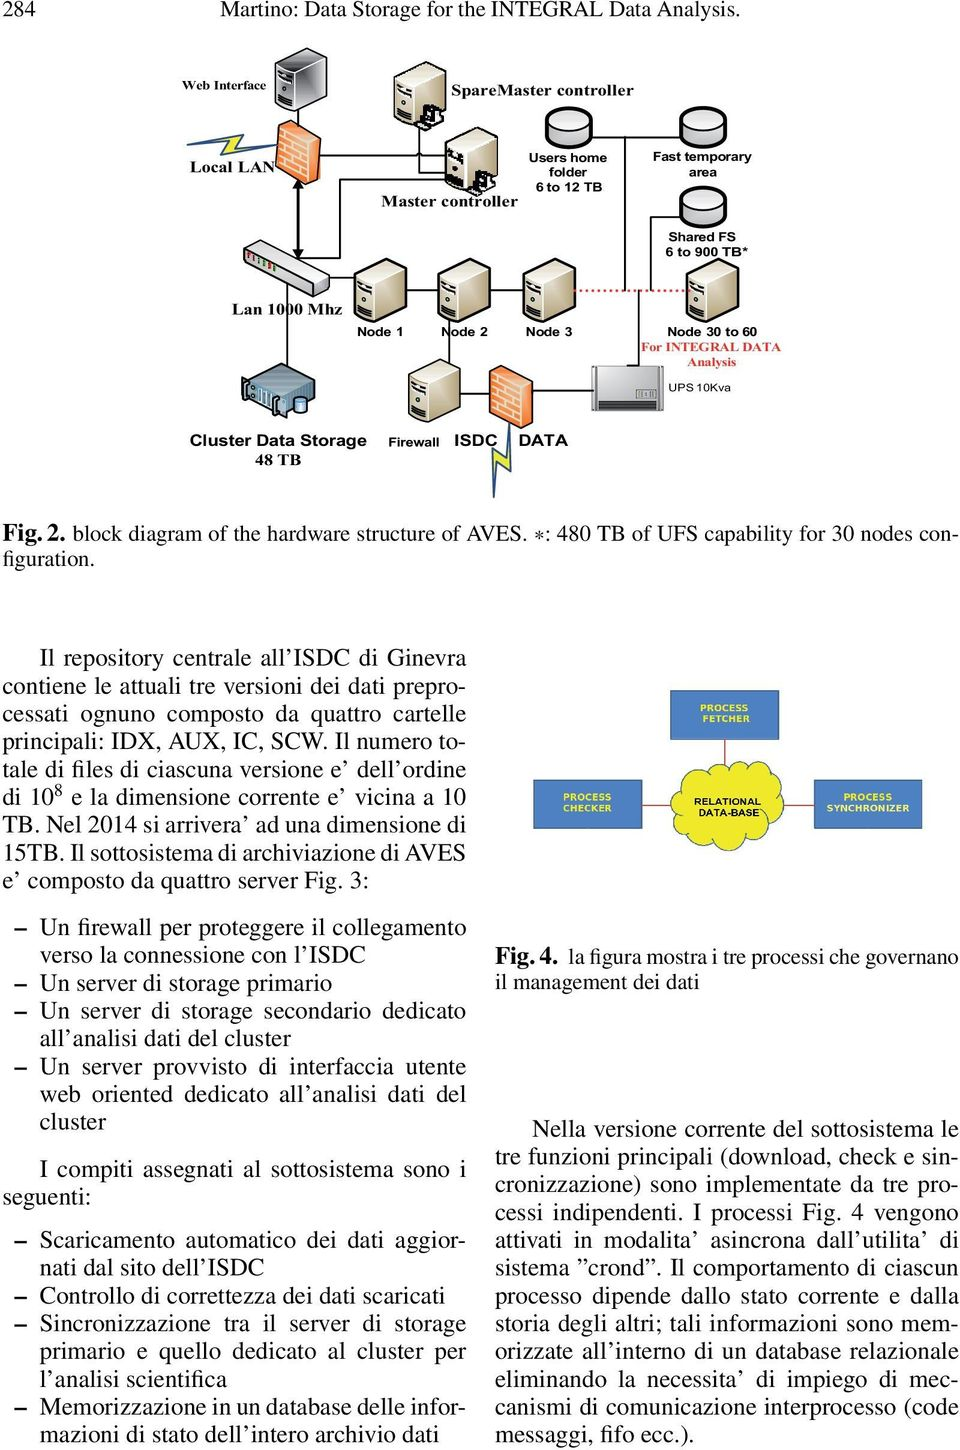 DATA Analysis UPS 10Kva Cluster Data Storage 48 TB Firewall ISDC DATA Fig. 2. block diagram of the hardware structure of AVES. : 480 TB of UFS capability for 30 nodes configuration.